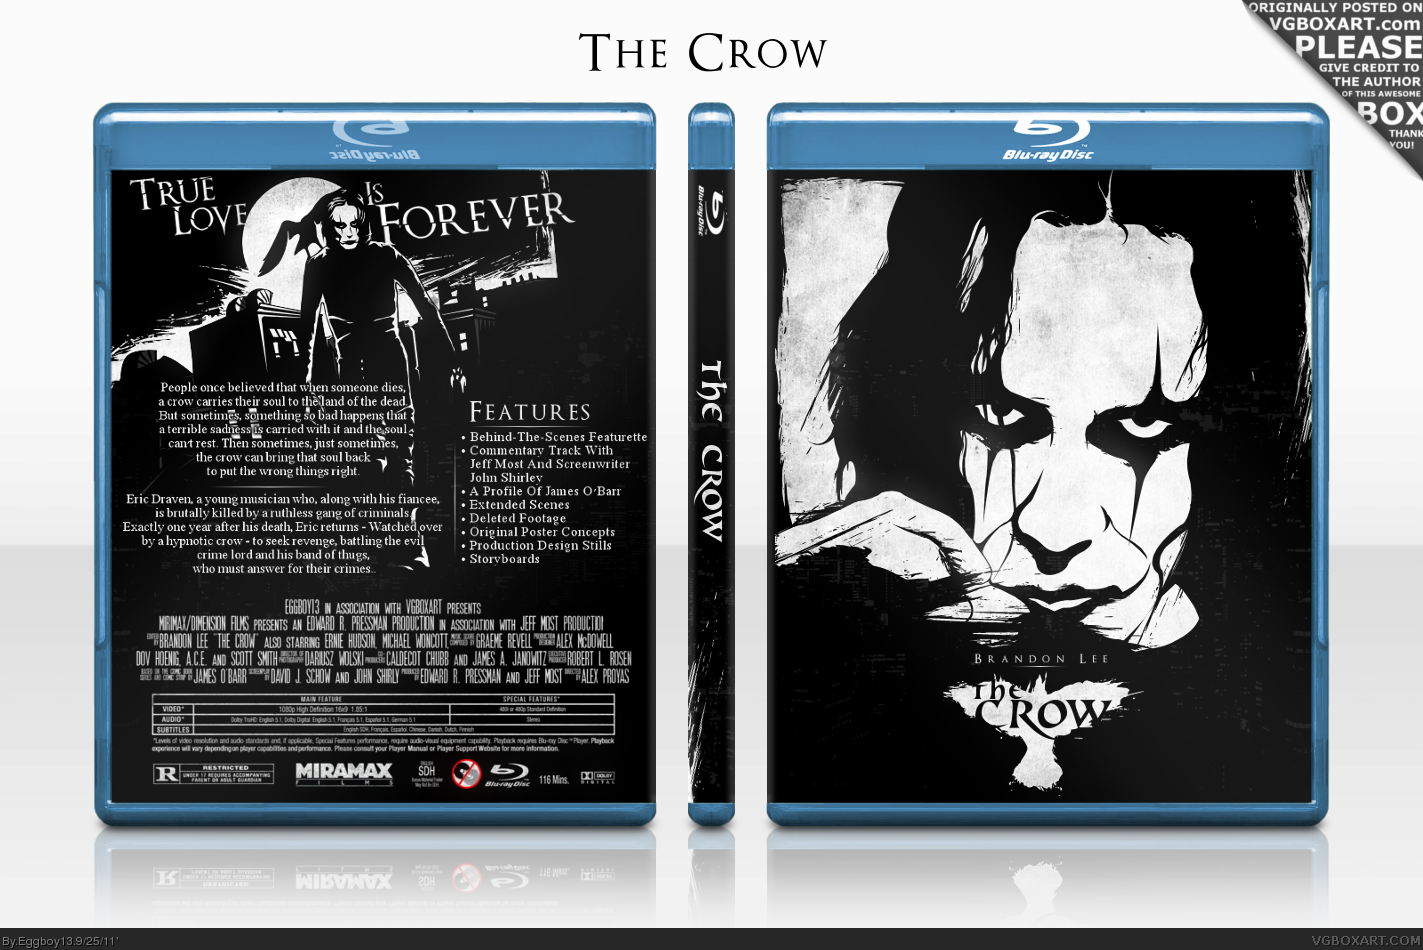 The Crow box cover